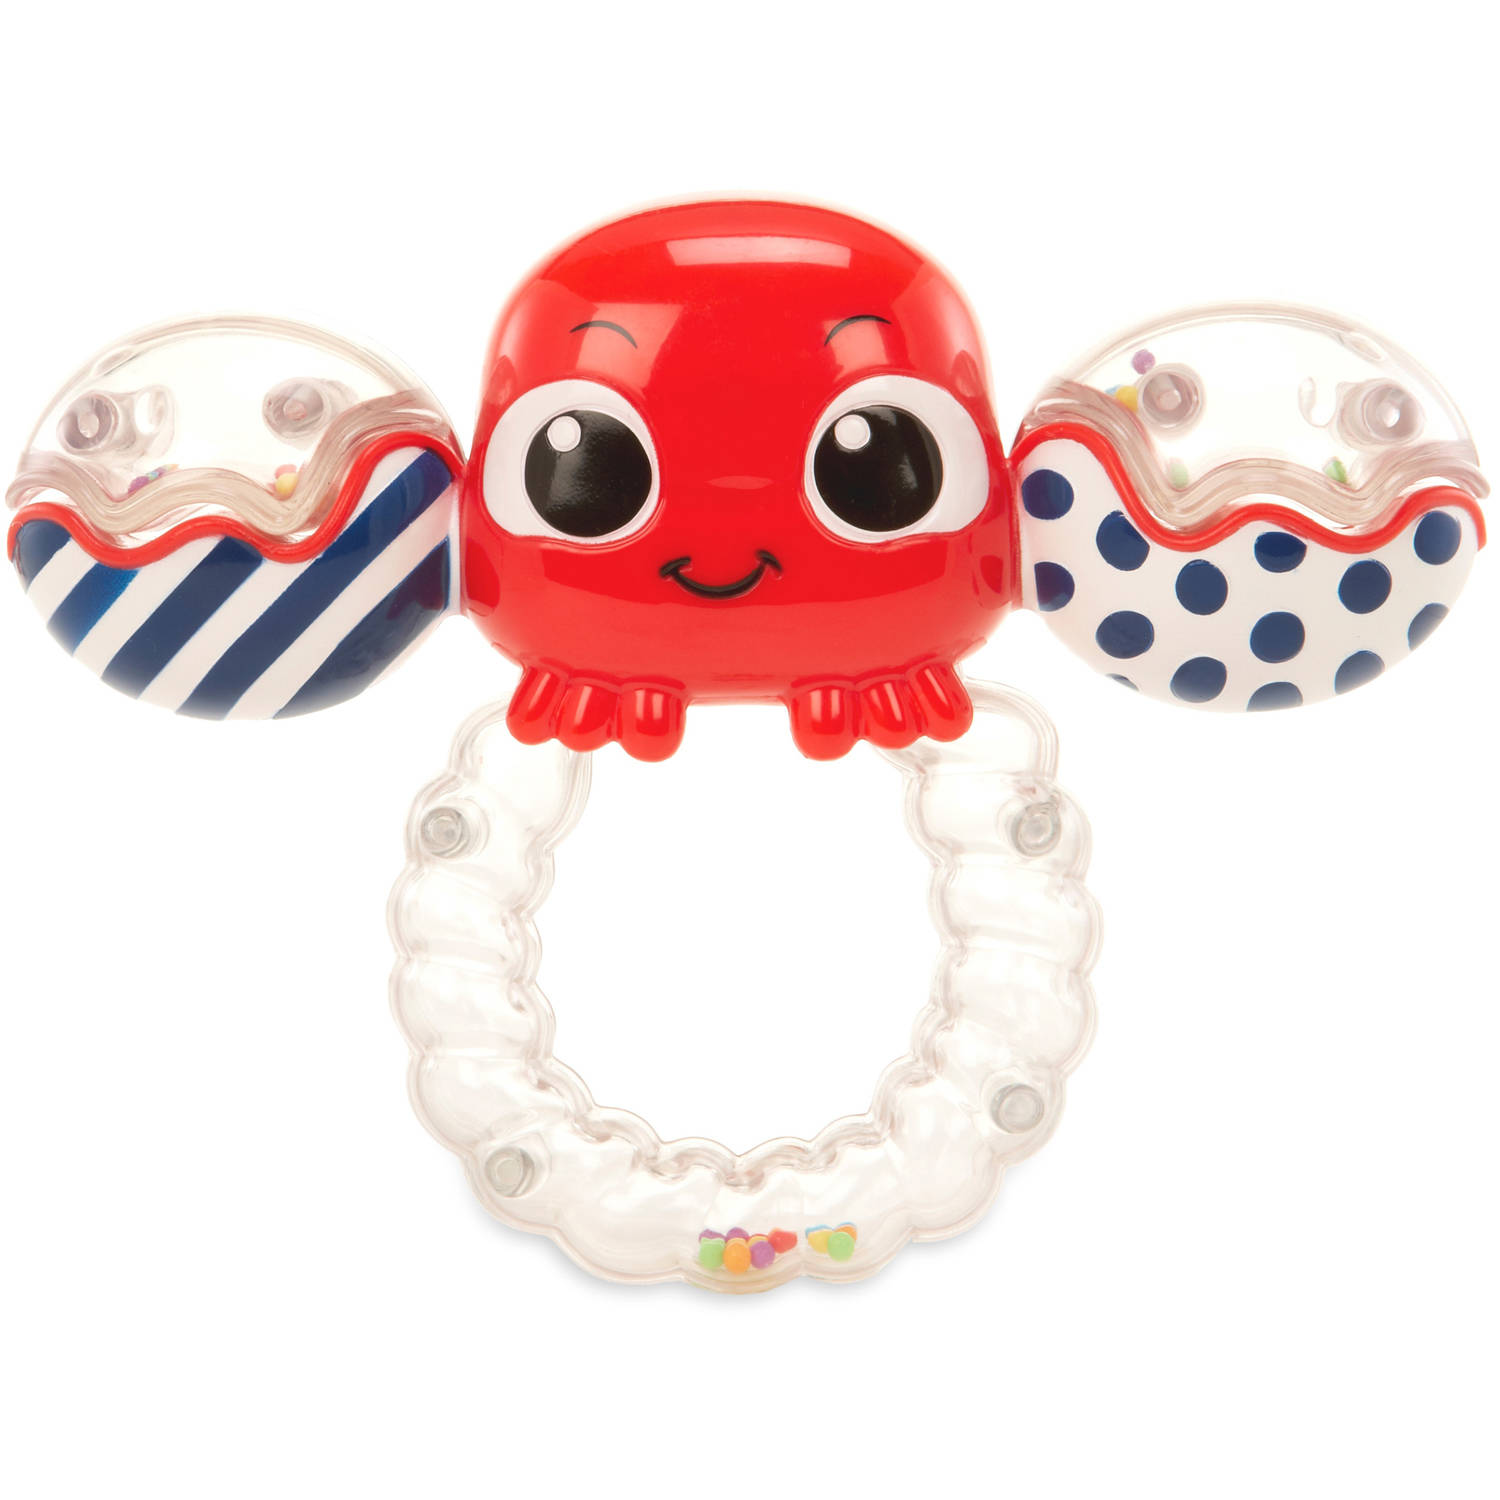 Little Tikes Shake 'n Rattle Crabbie- Red by Little Tikes